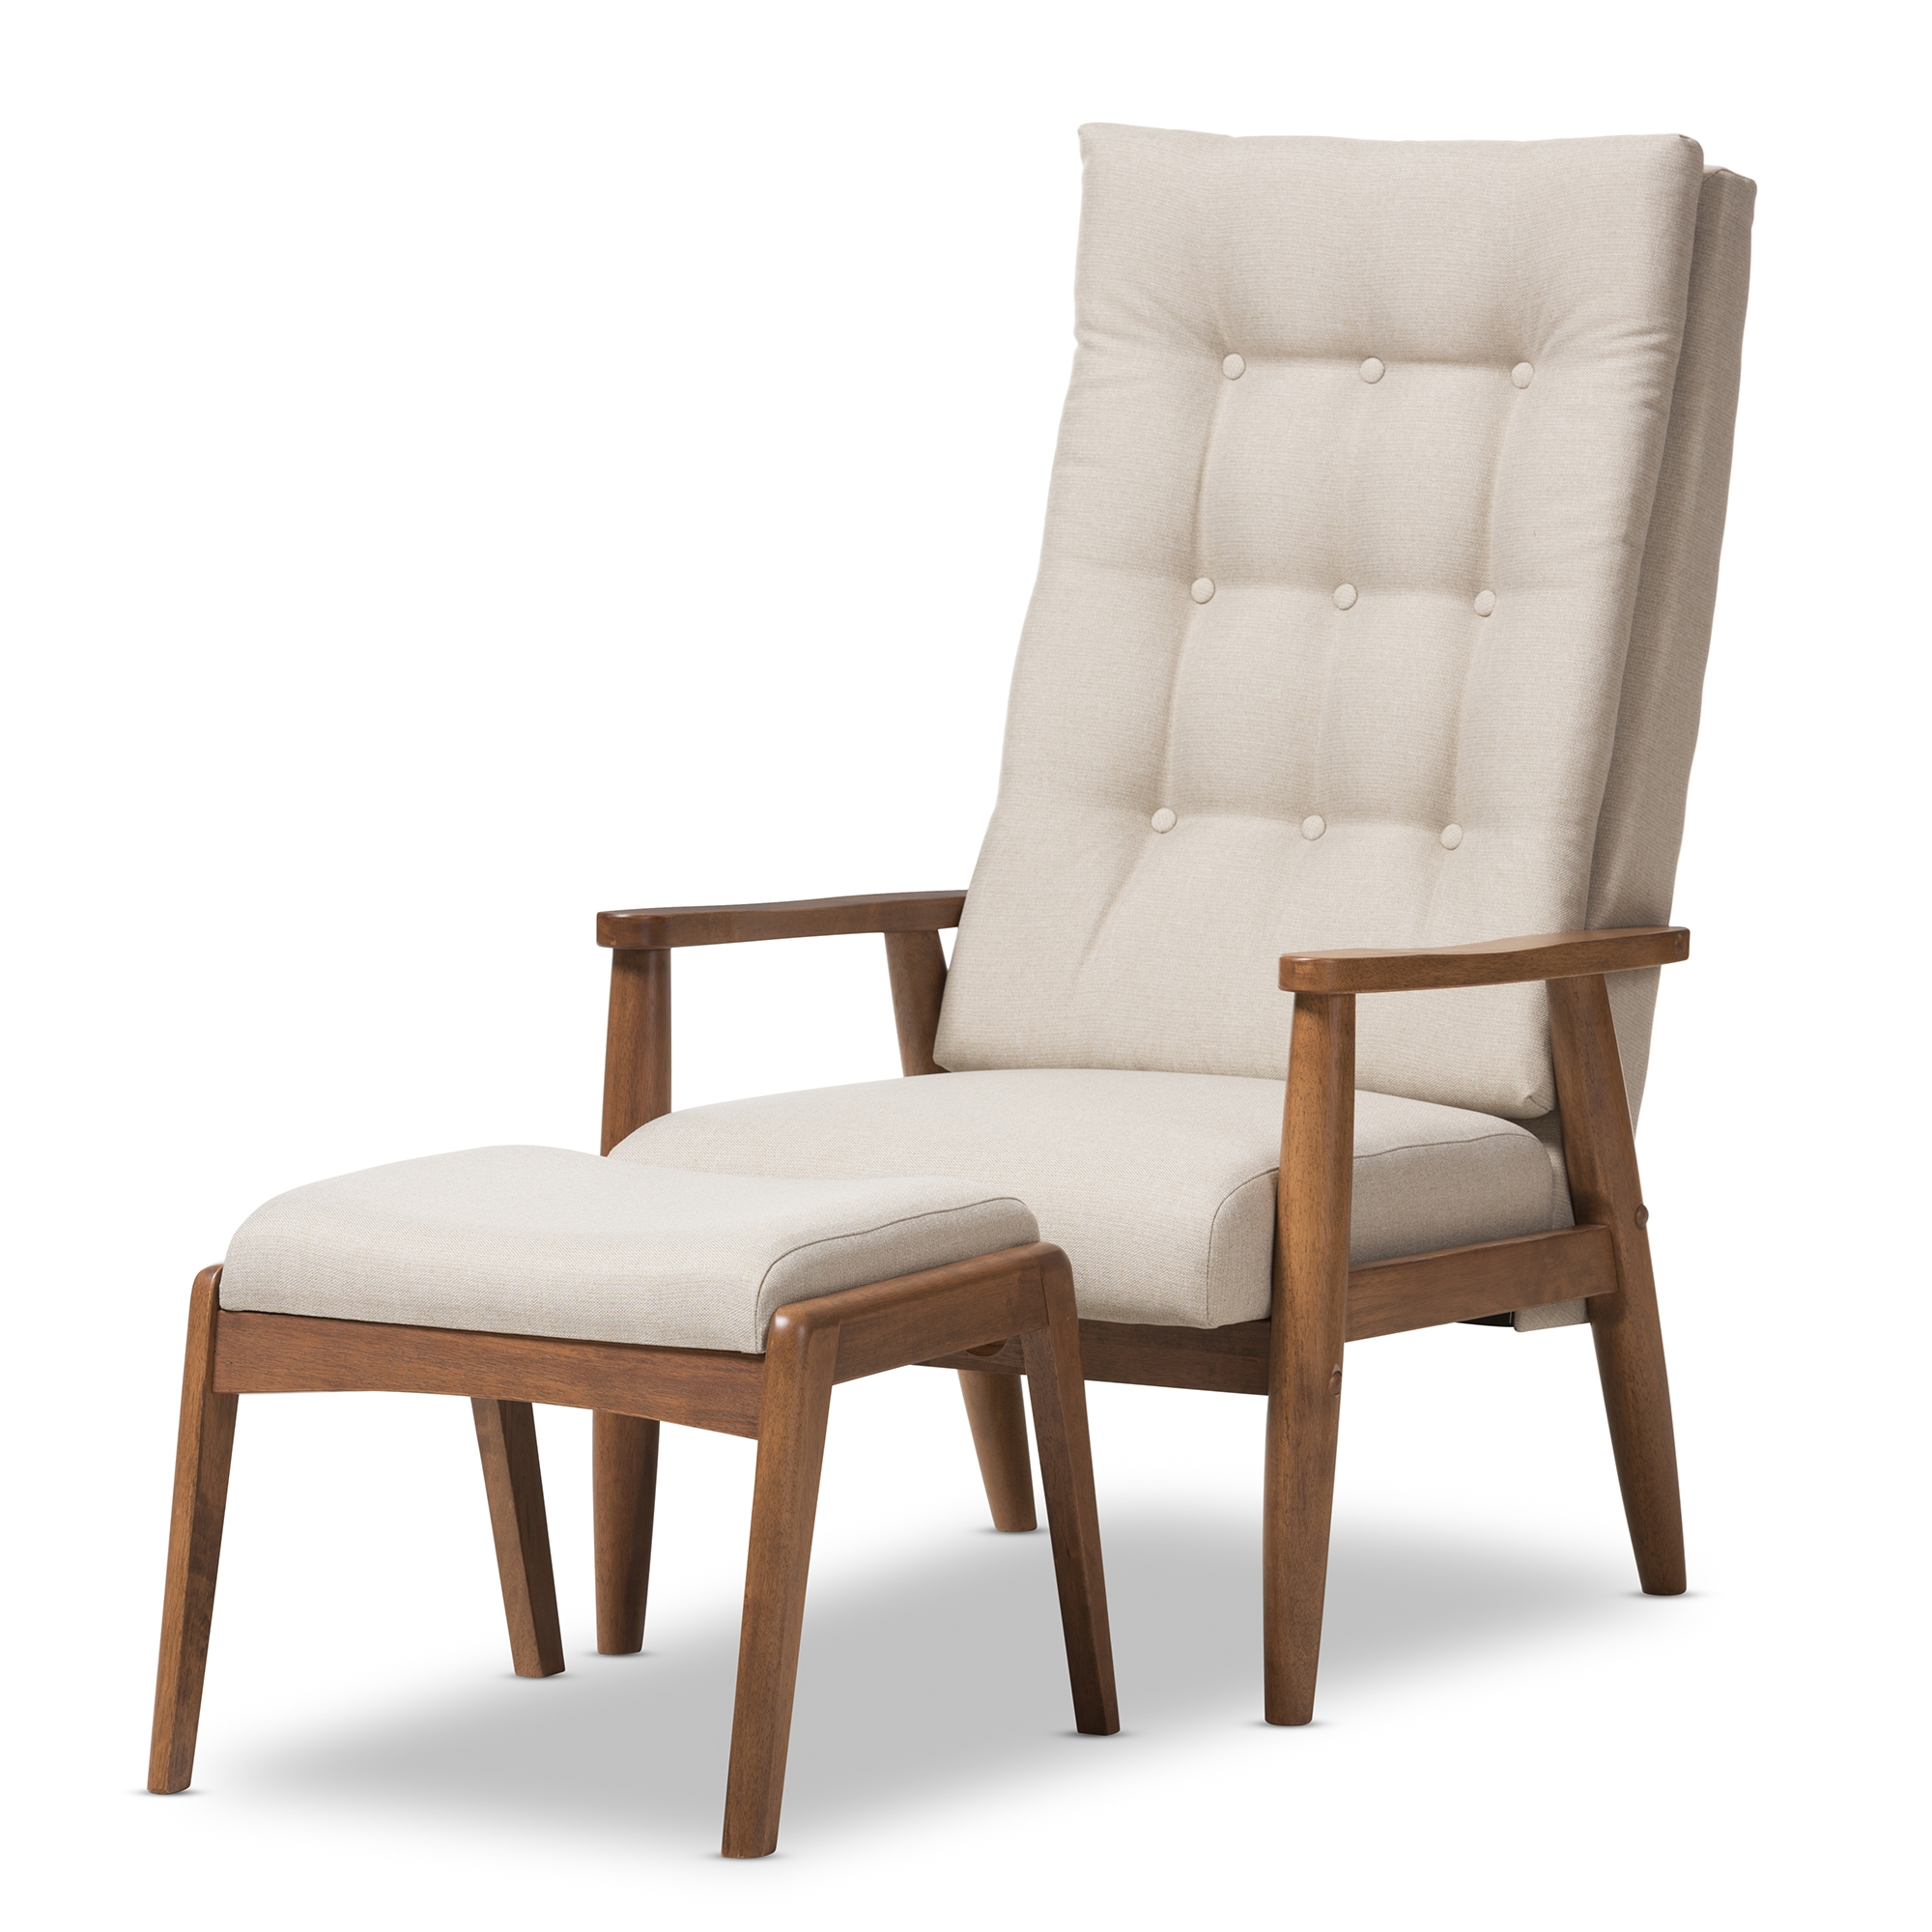 Baxton Studio Roxy Mid Century Modern Walnut Wood Finishing And Light Beige  Fabric Upholstered Button Tufted High Back Lounge Chair And Ottoman Set Part 74